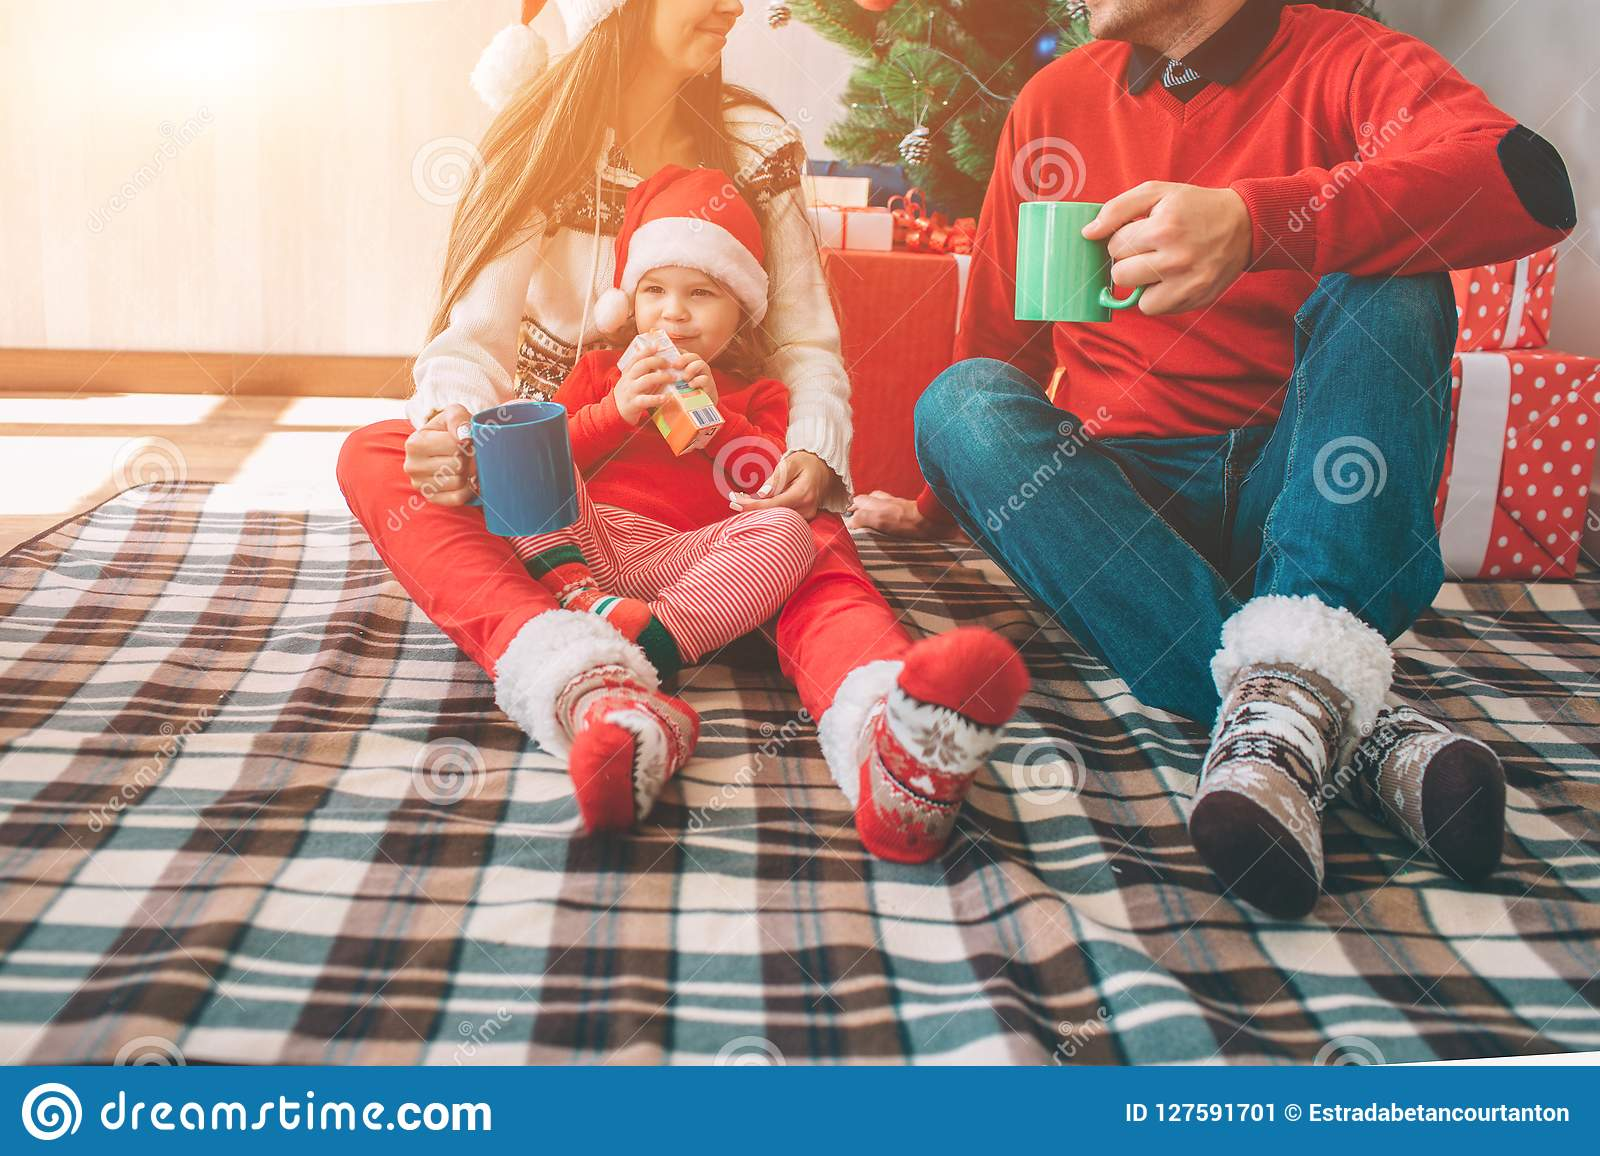 Merry Christmas and Happy New Year. Cut view of family sitting together on blanket. They wear colorful clothes. Man and